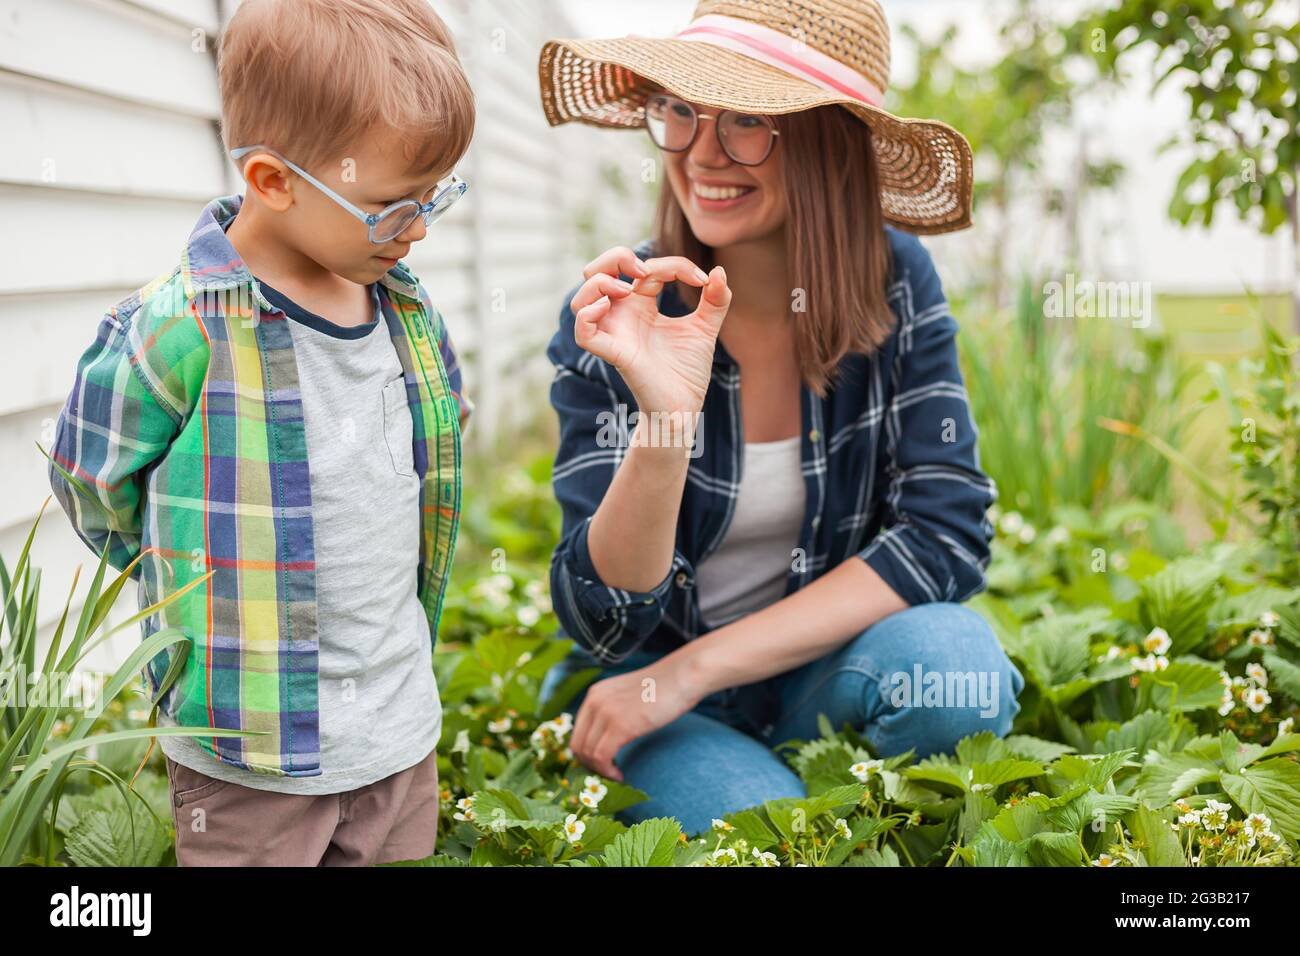 Child and mother gardening in strawberry plant garden in backyard Stock Photo